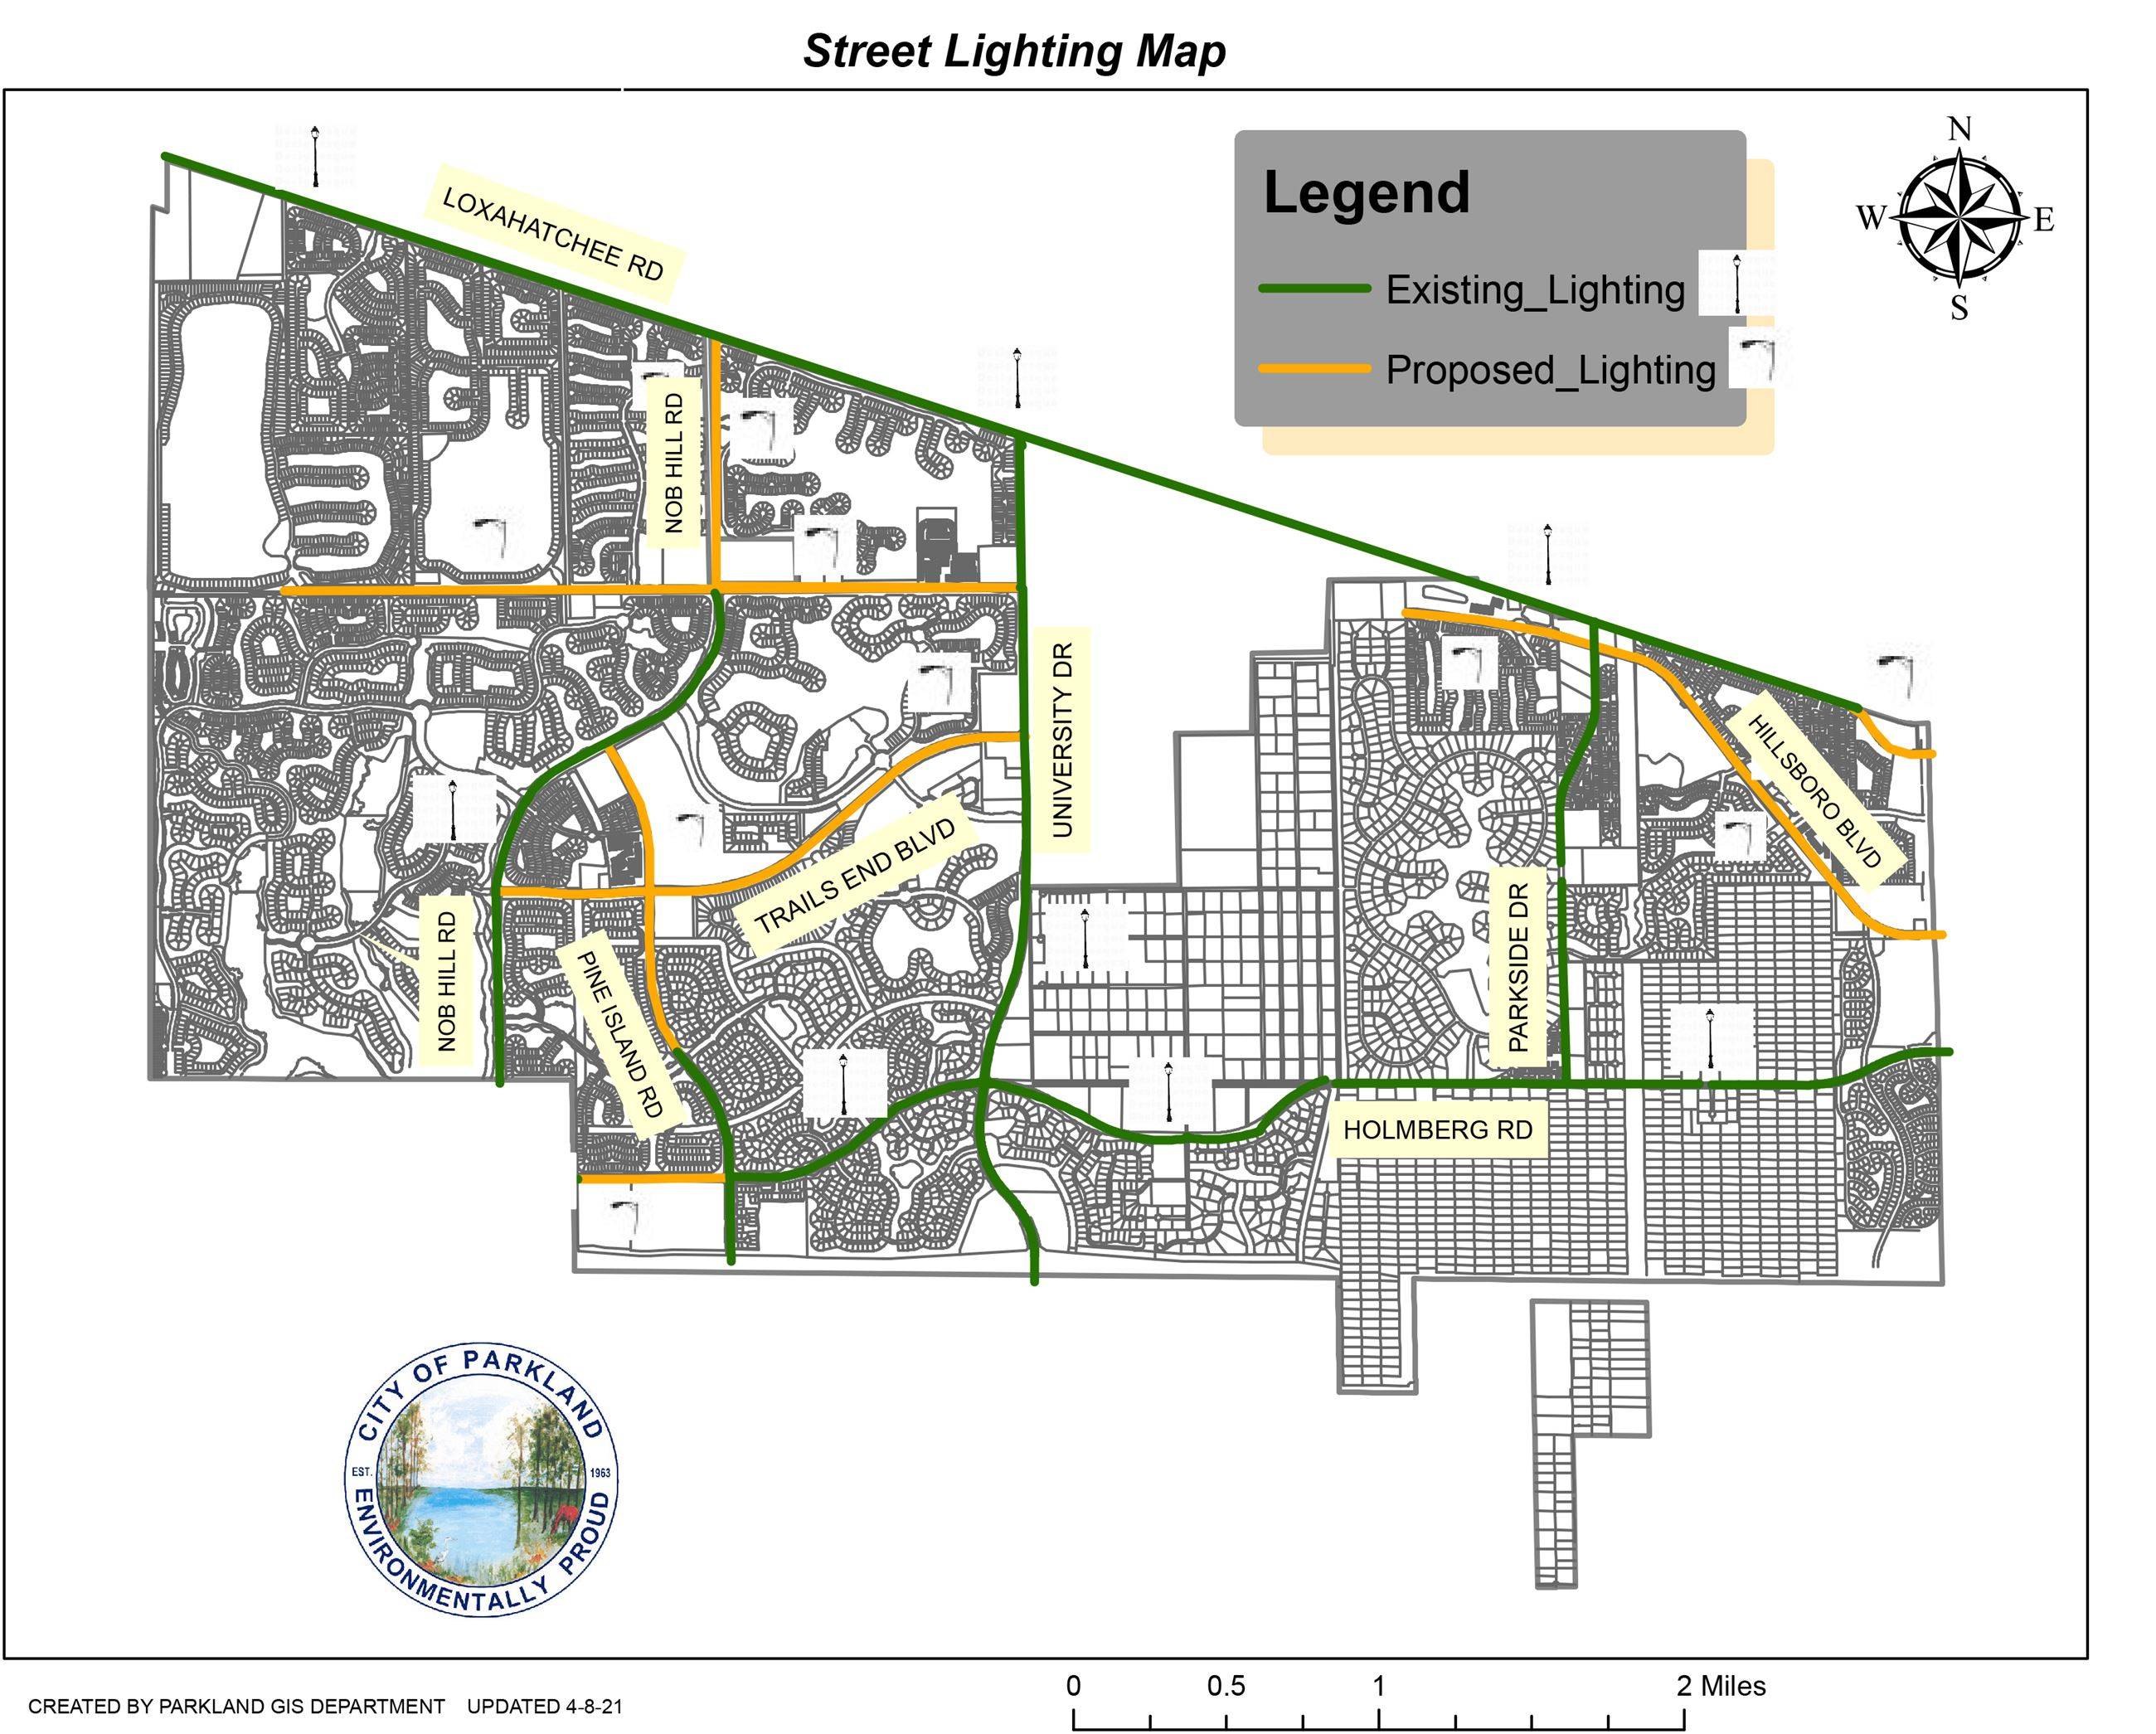 Street Lighting Map in the City of Parkland